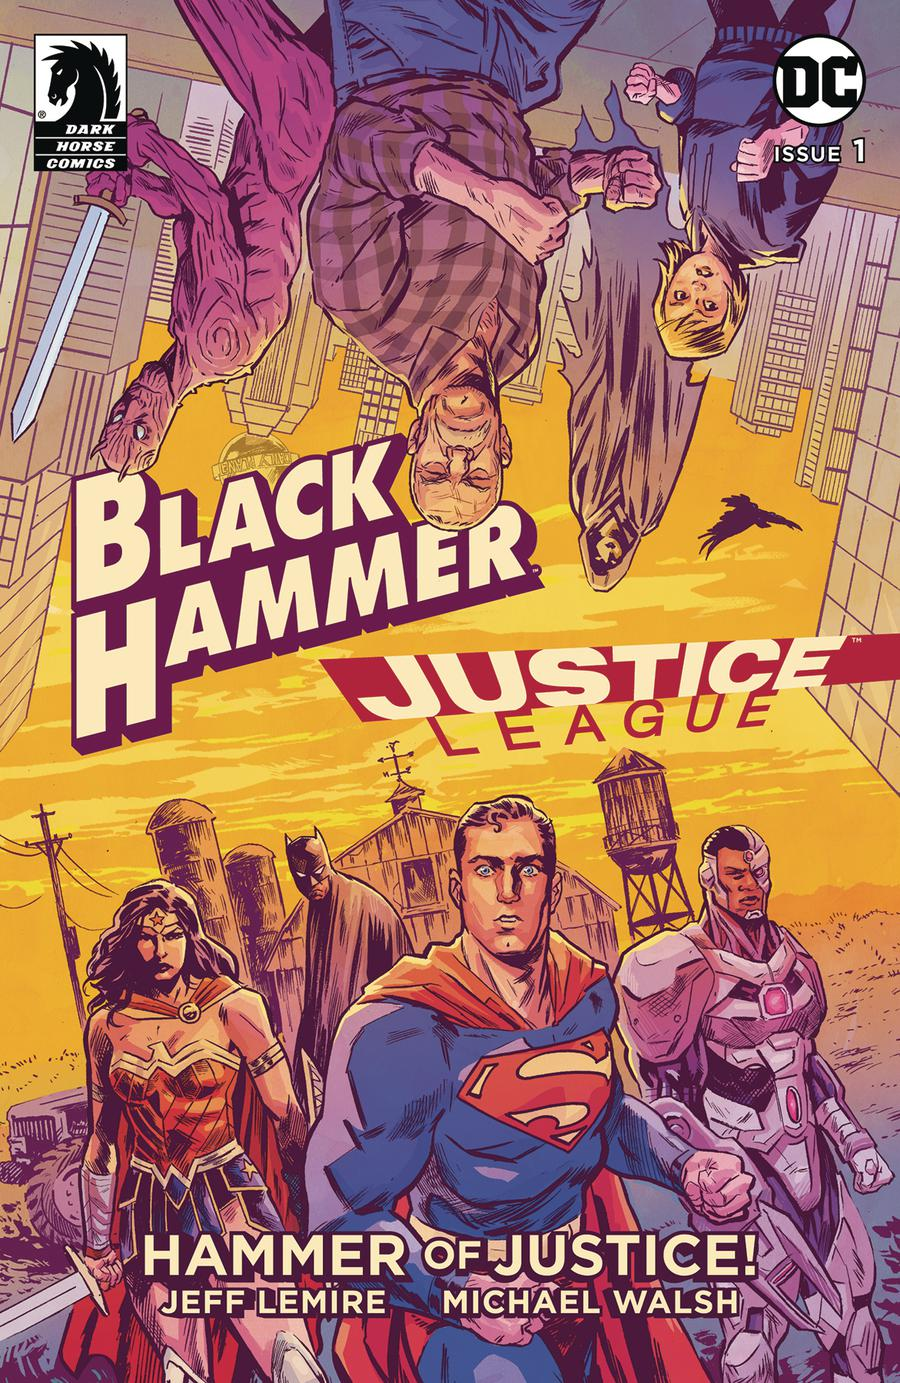 Black Hammer Justice League Hammer Of Justice #1 Cover A Regular Michael Walsh Cover